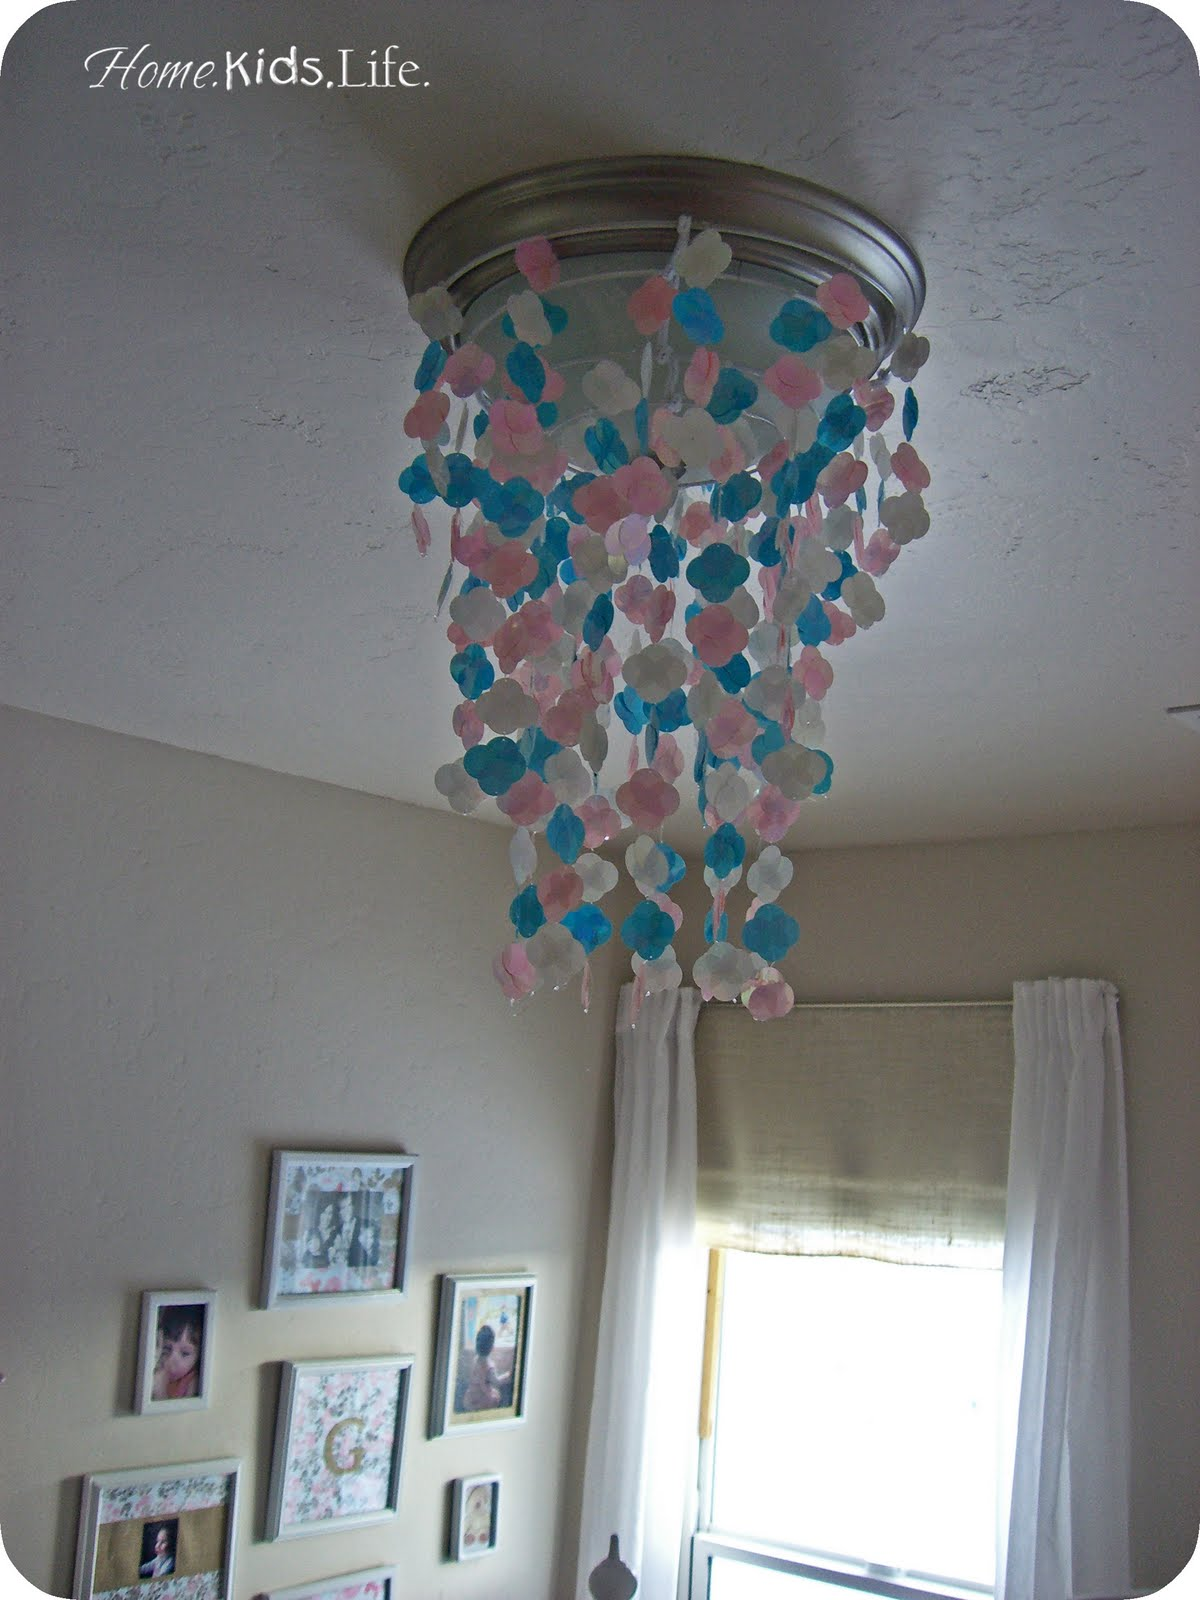 Home. Kids. Life.: DIY Faux Capiz Light Cover